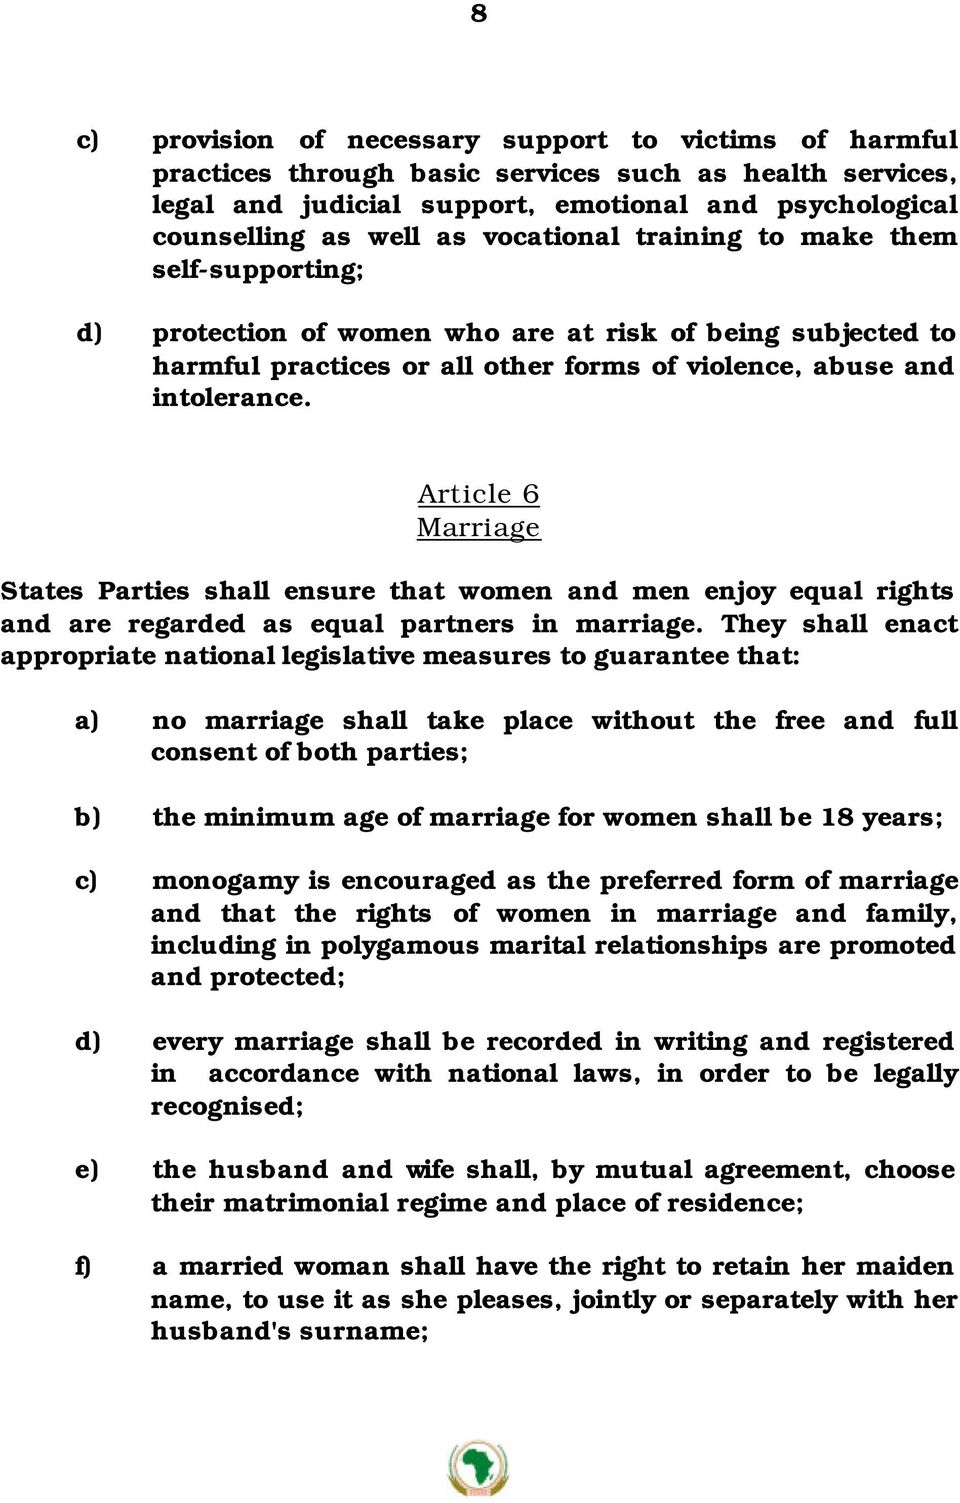 Article 6 Marriage States Parties shall ensure that women and men enjoy equal rights and are regarded as equal partners in marriage.